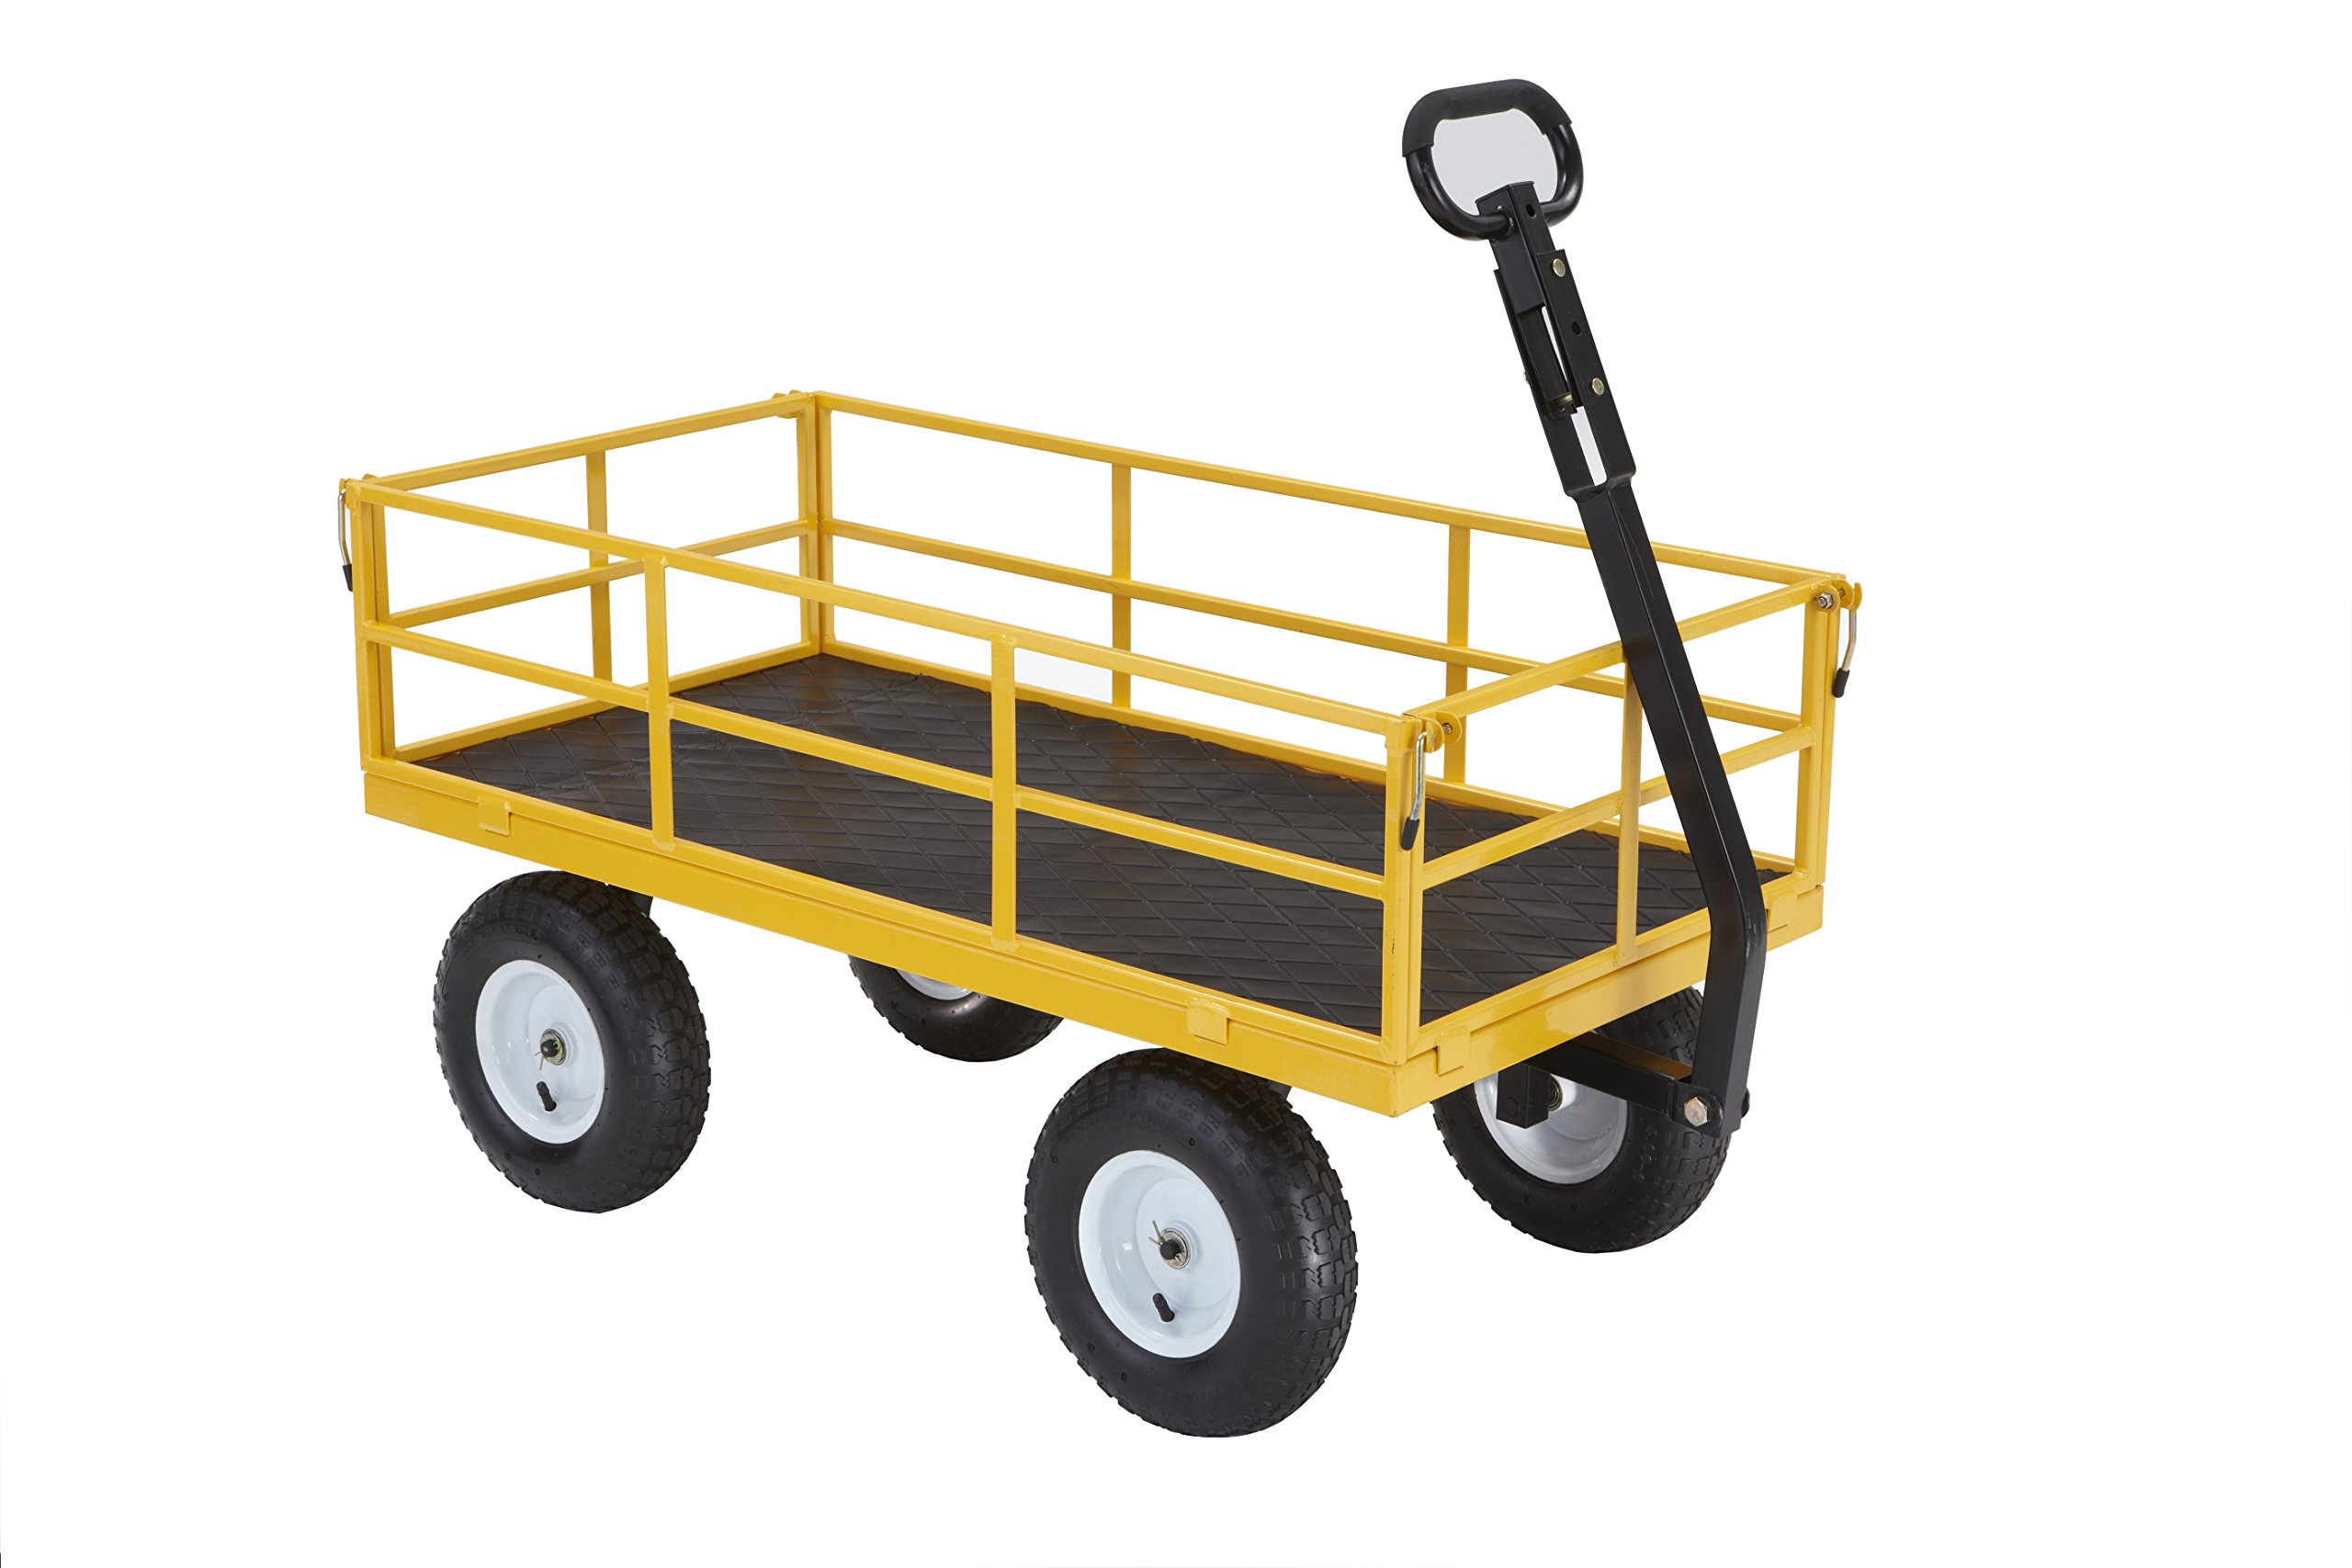 Gorilla Carts Heavy-Duty Steel Utility Cart with Removable Sides and 13'' Tires with 1200 lb Capacity, Yellow